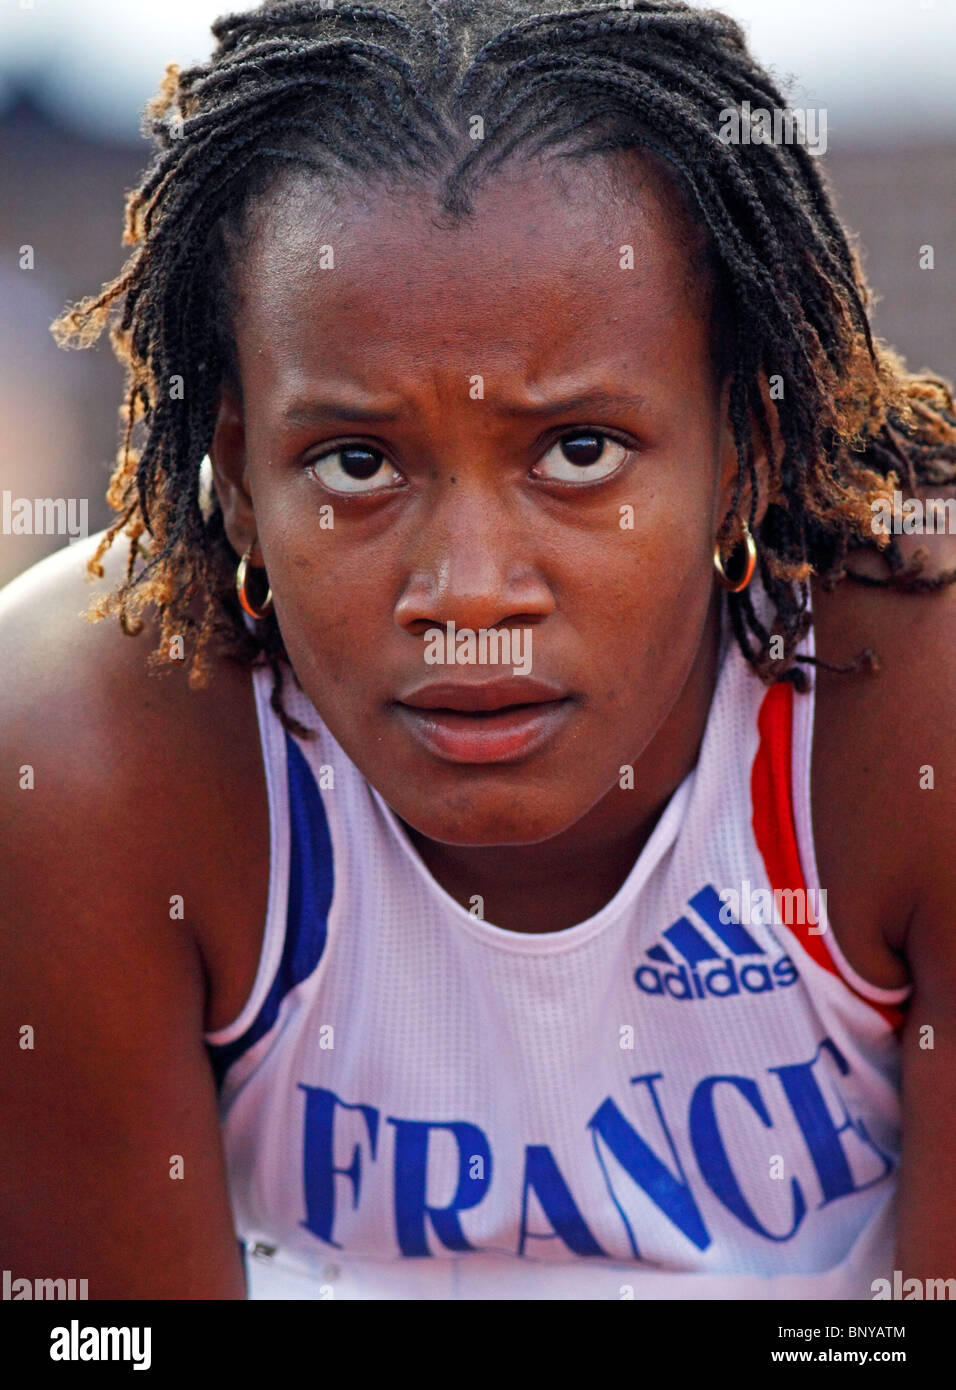 Jessica Alcan of France awaits her time in women's 100-metre hurdles at the 2010 IAAF World Junior Championships - Stock Image